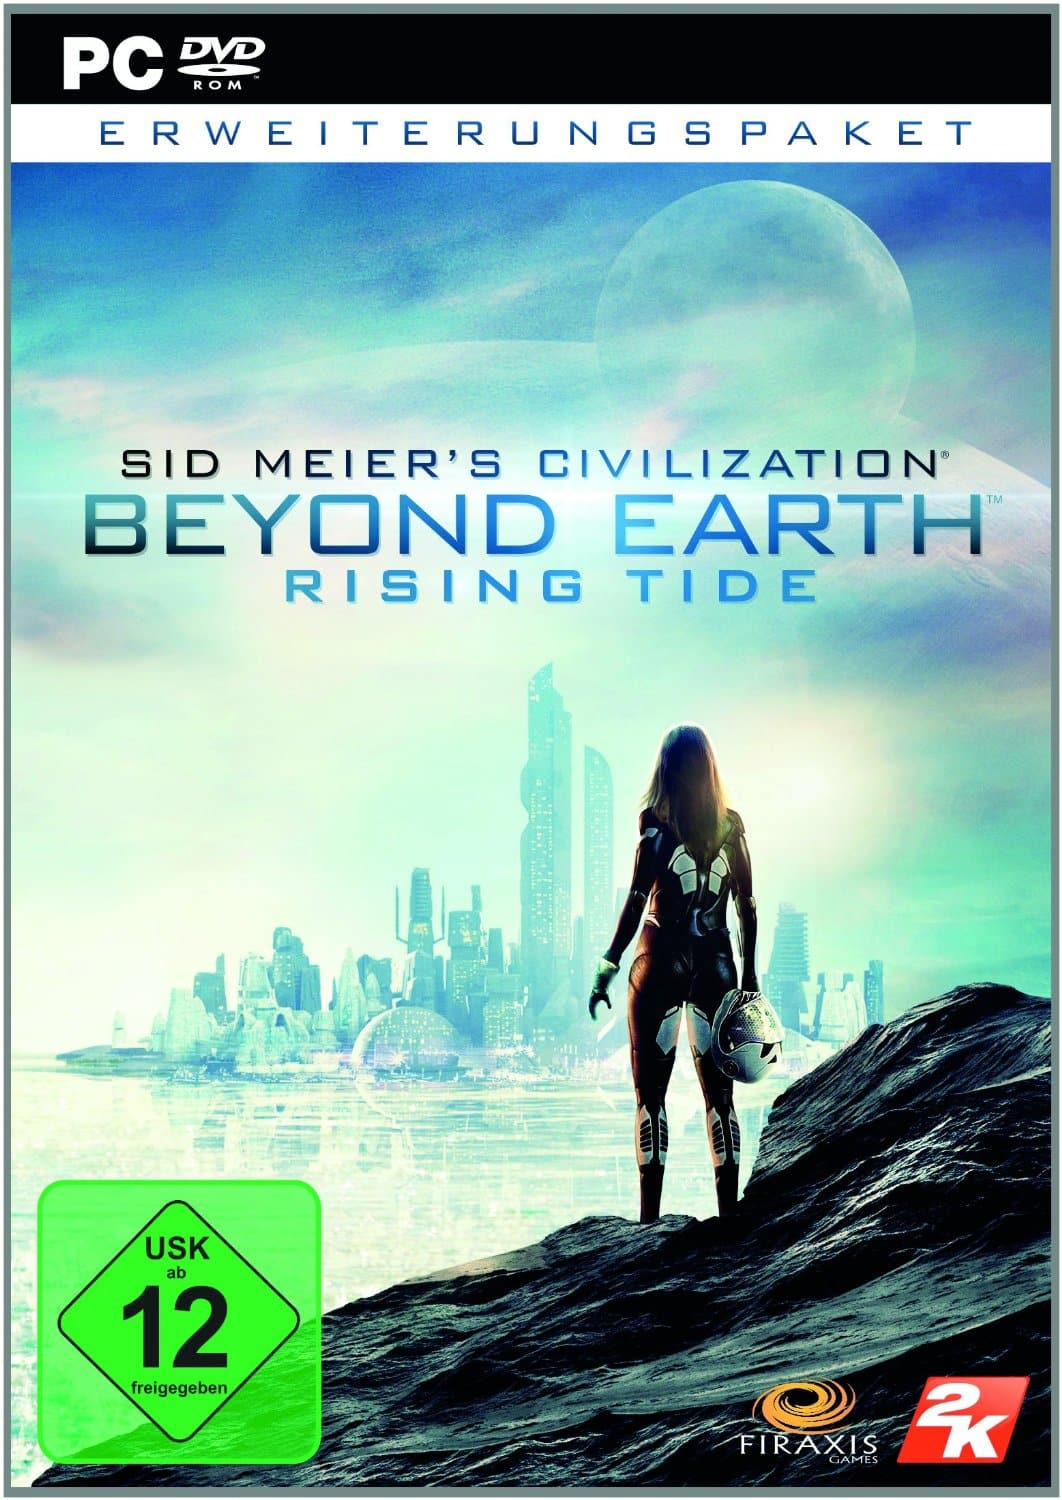 civ_rising_tide